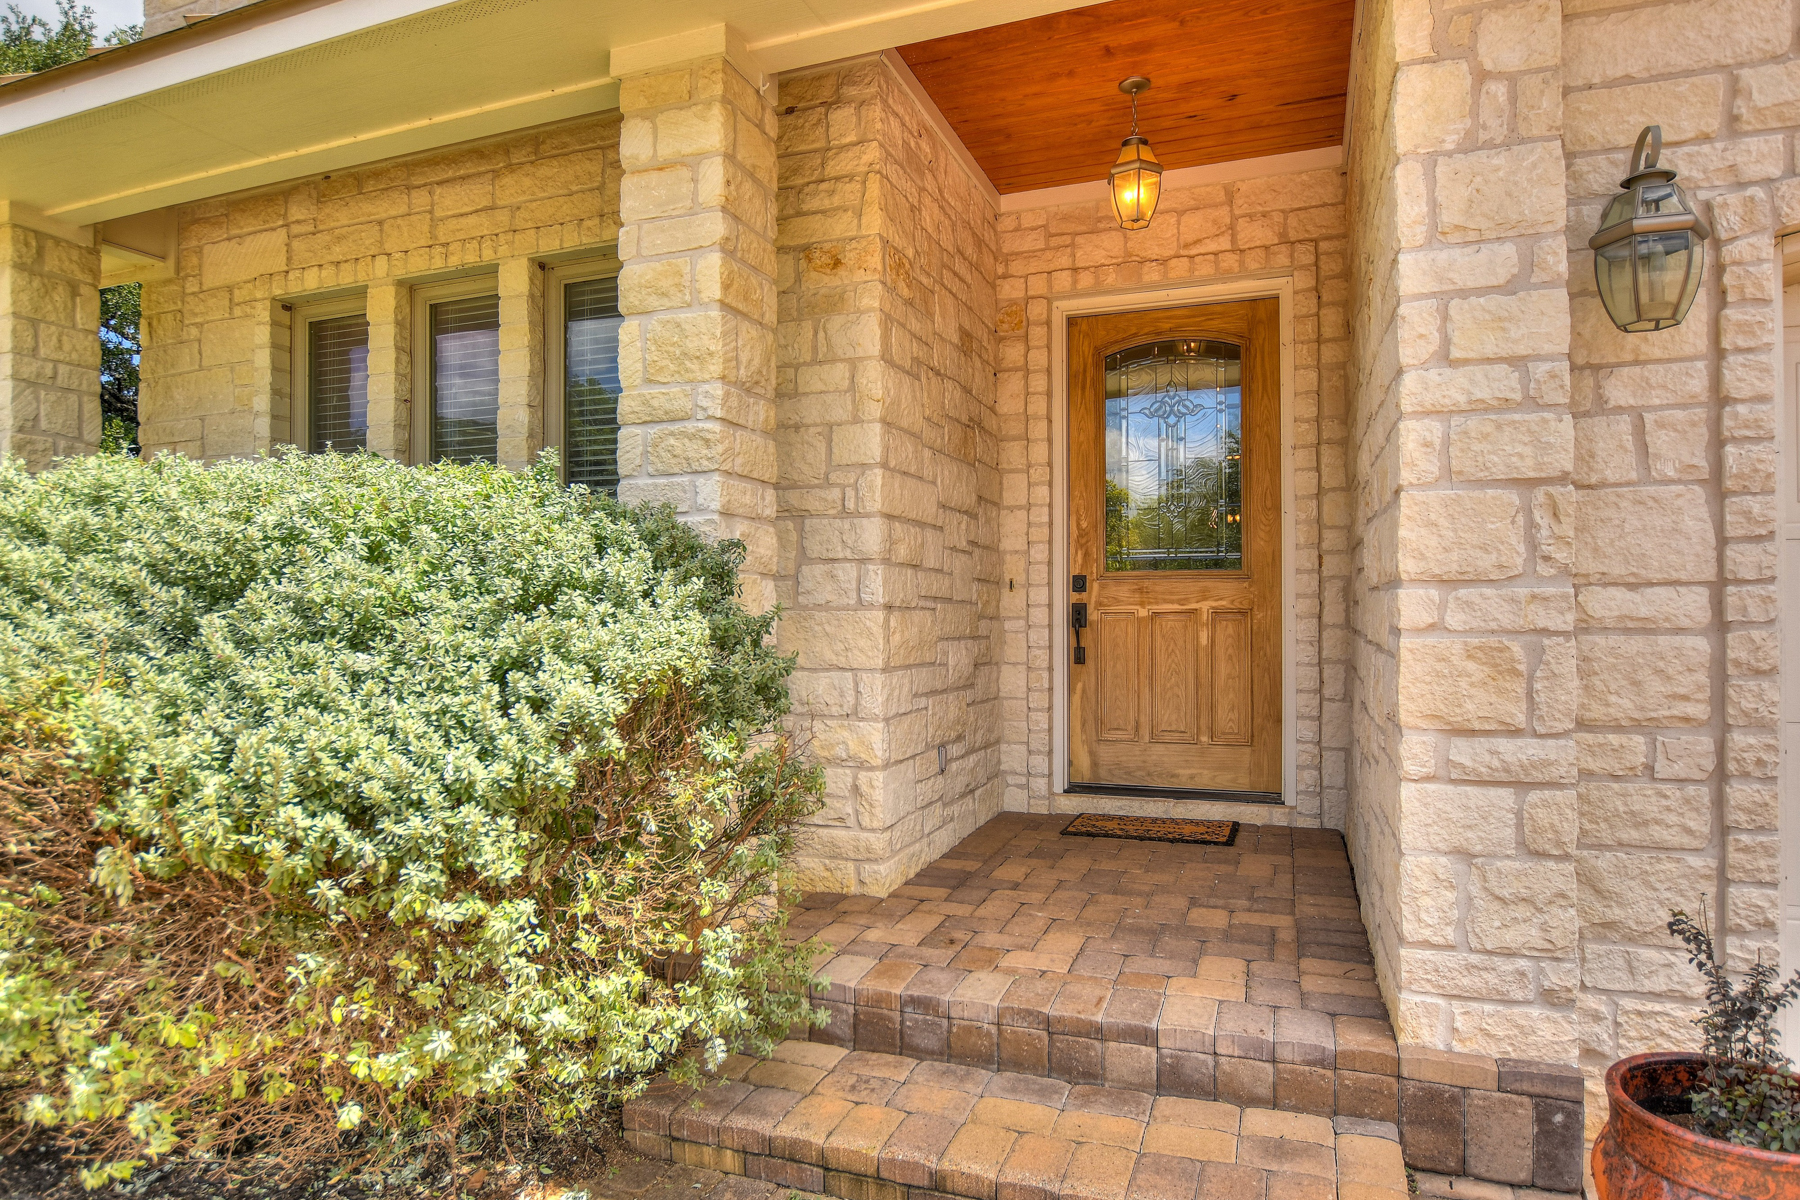 Additional photo for property listing at Beautiful Home in Horseshoe Bay West 3504 Douglas Dr Horseshoe Bay, Texas 78657 United States